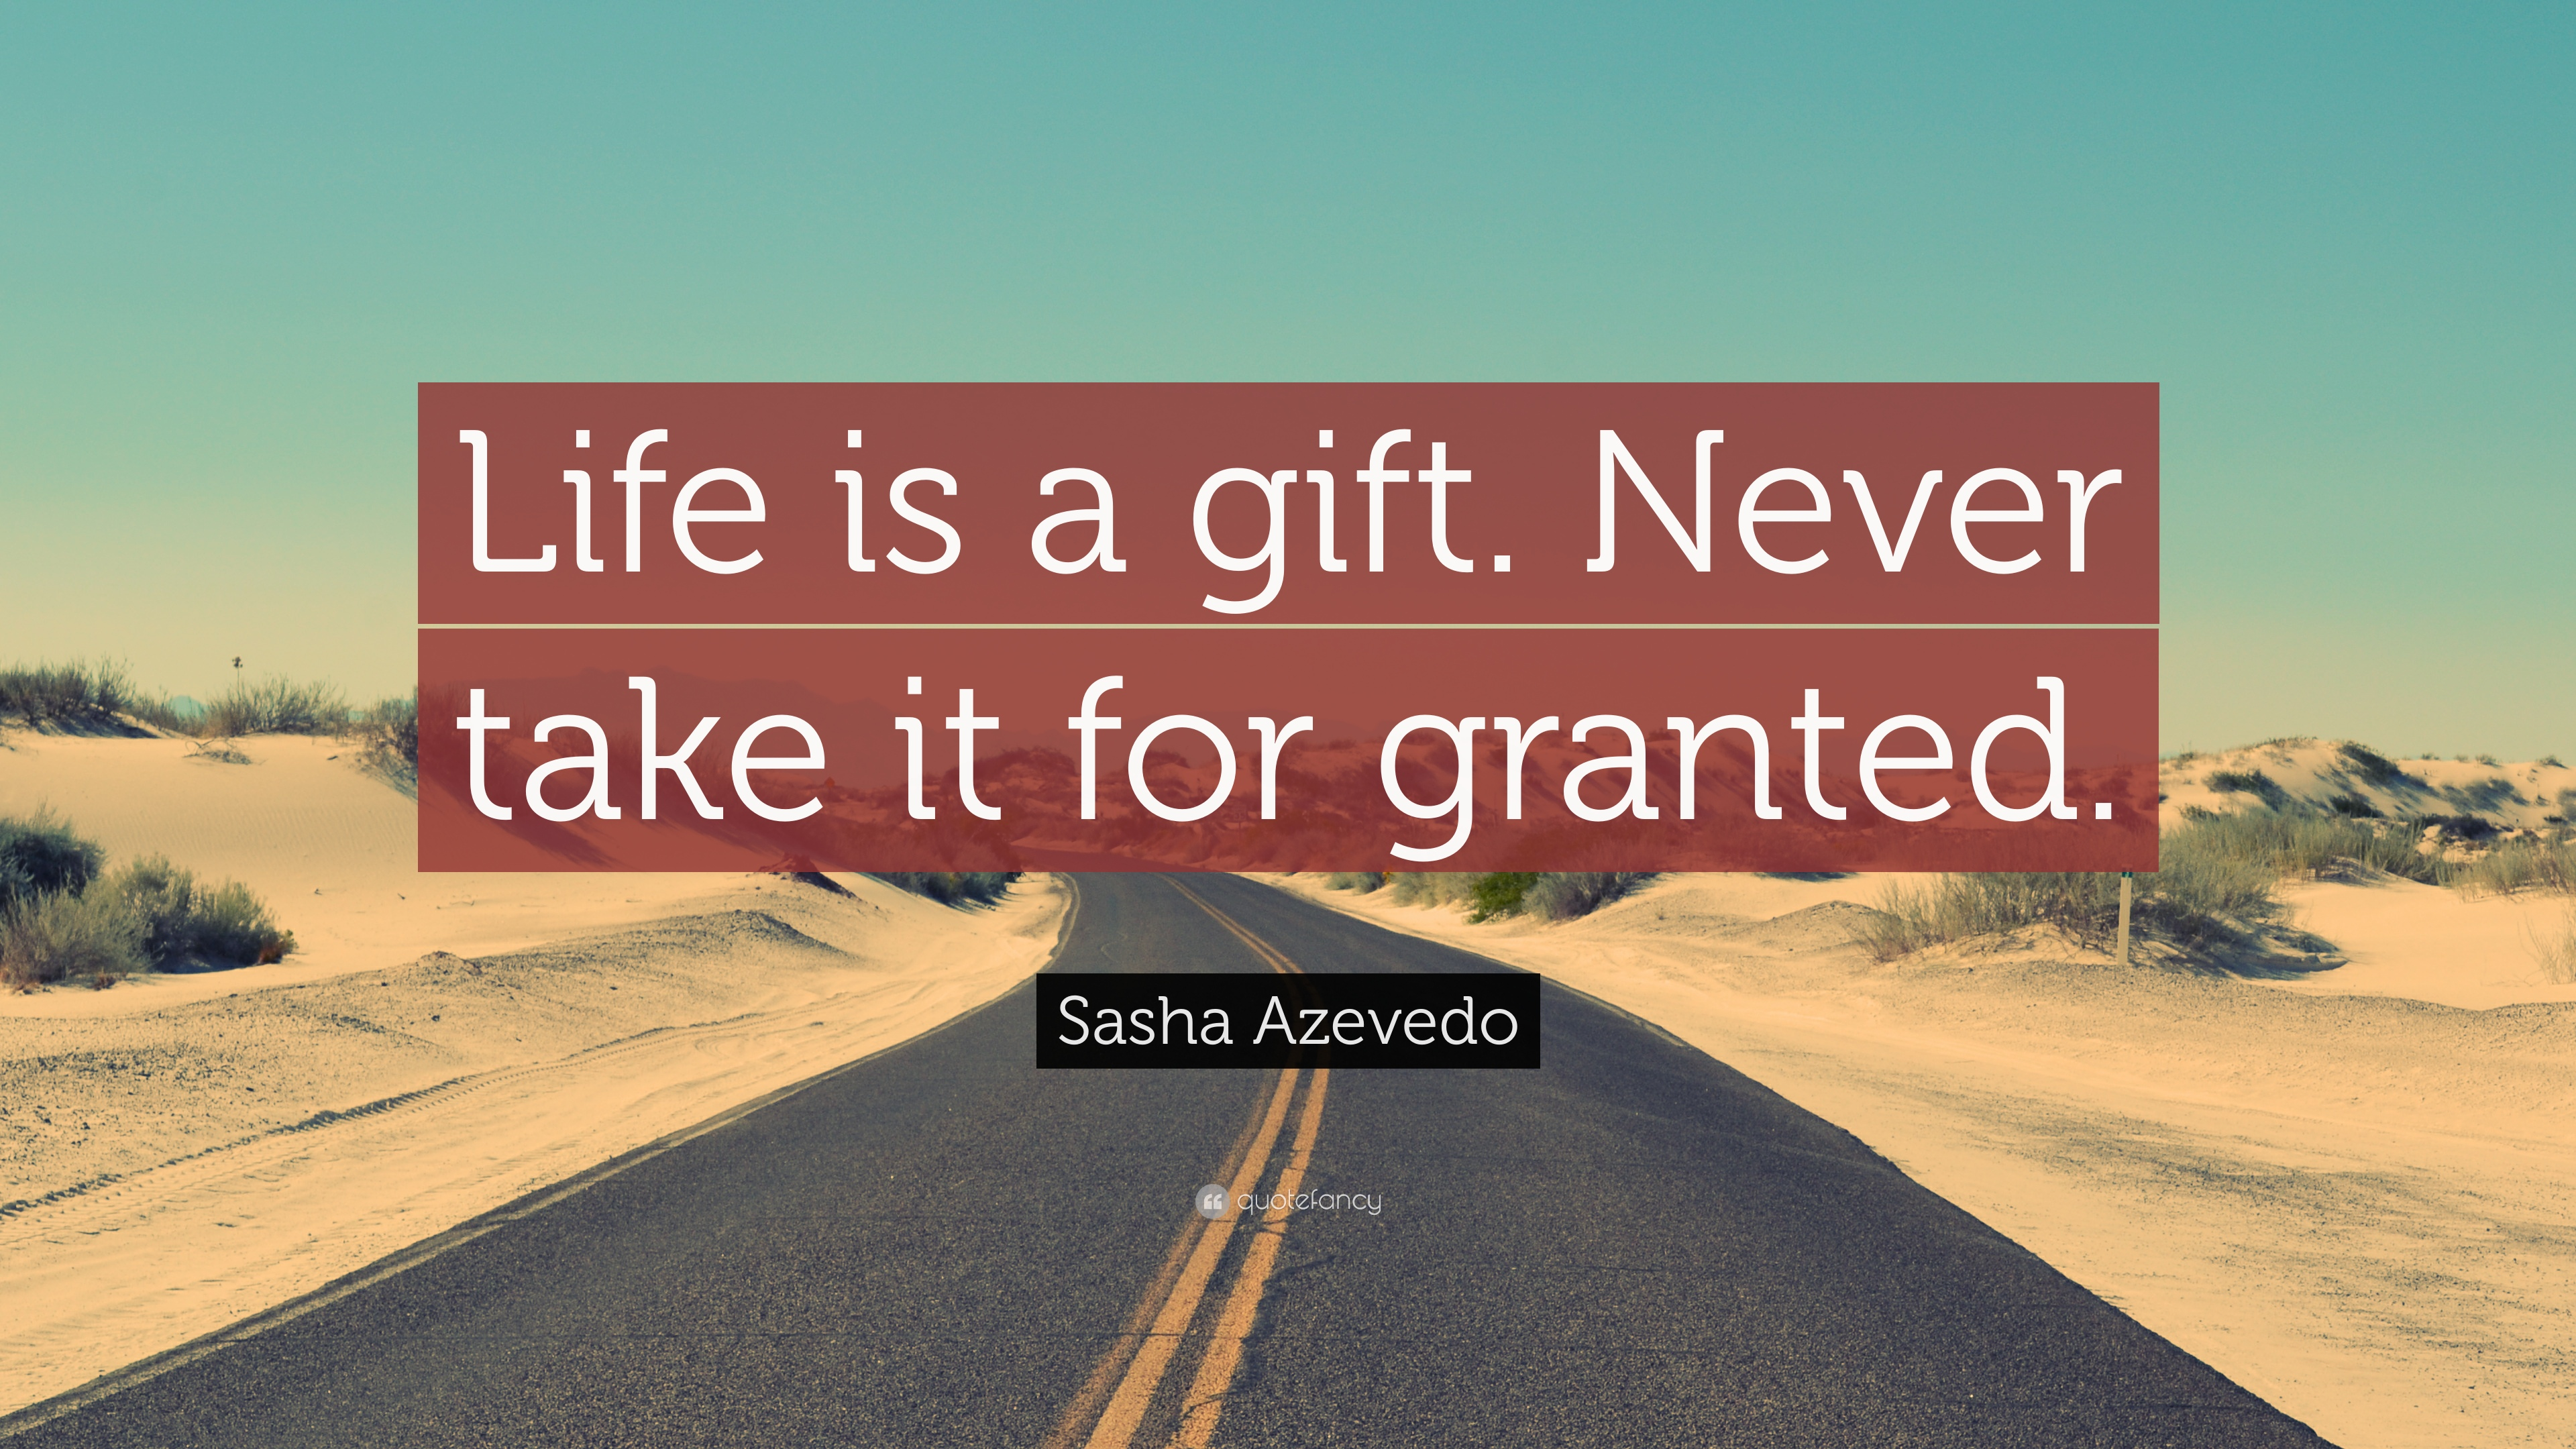 Sasha Azevedo Quote: Life is a gift. Never take it for